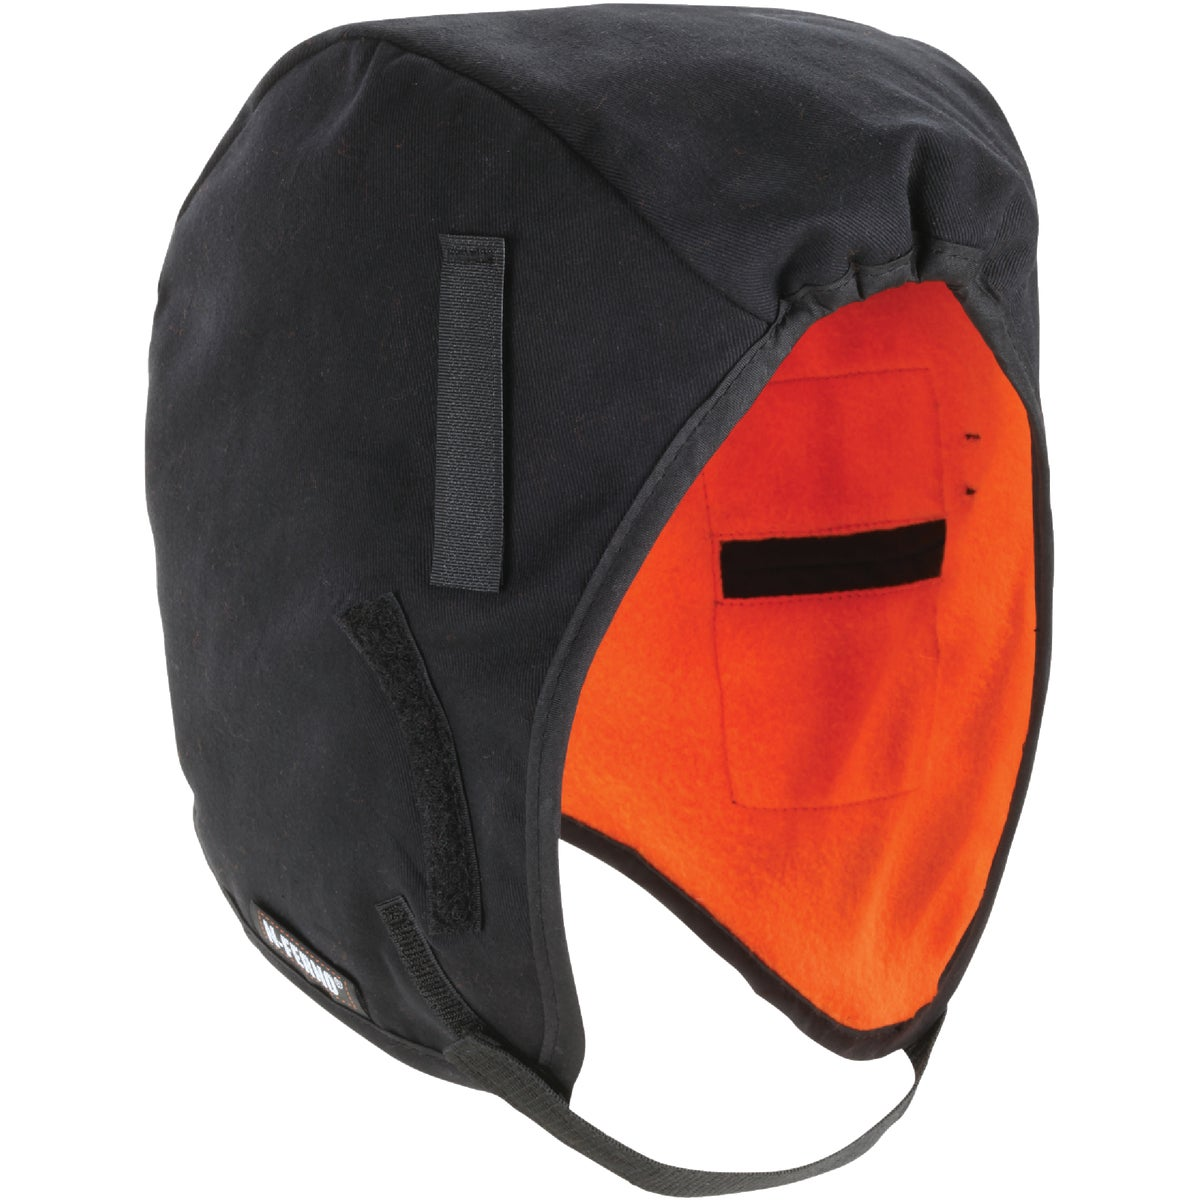 HARD HAT WINTER LINER - 6850 by Ergodyne Incom